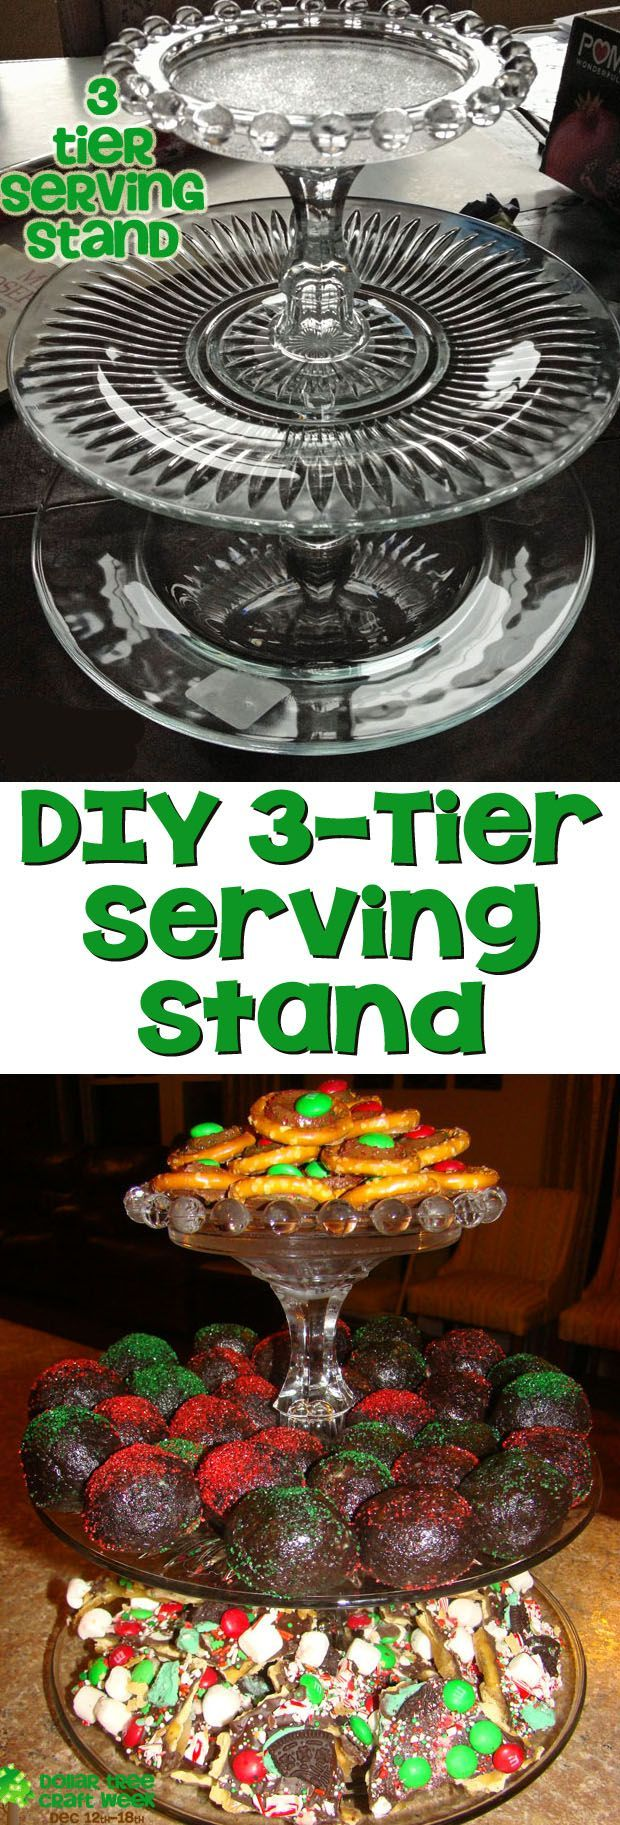 DIY 3-Tier Serving Stand - Create this DIY Serving Stand for Under $8 using items from a dollar store and glass glue. The three tiers will hold a lot of party food.